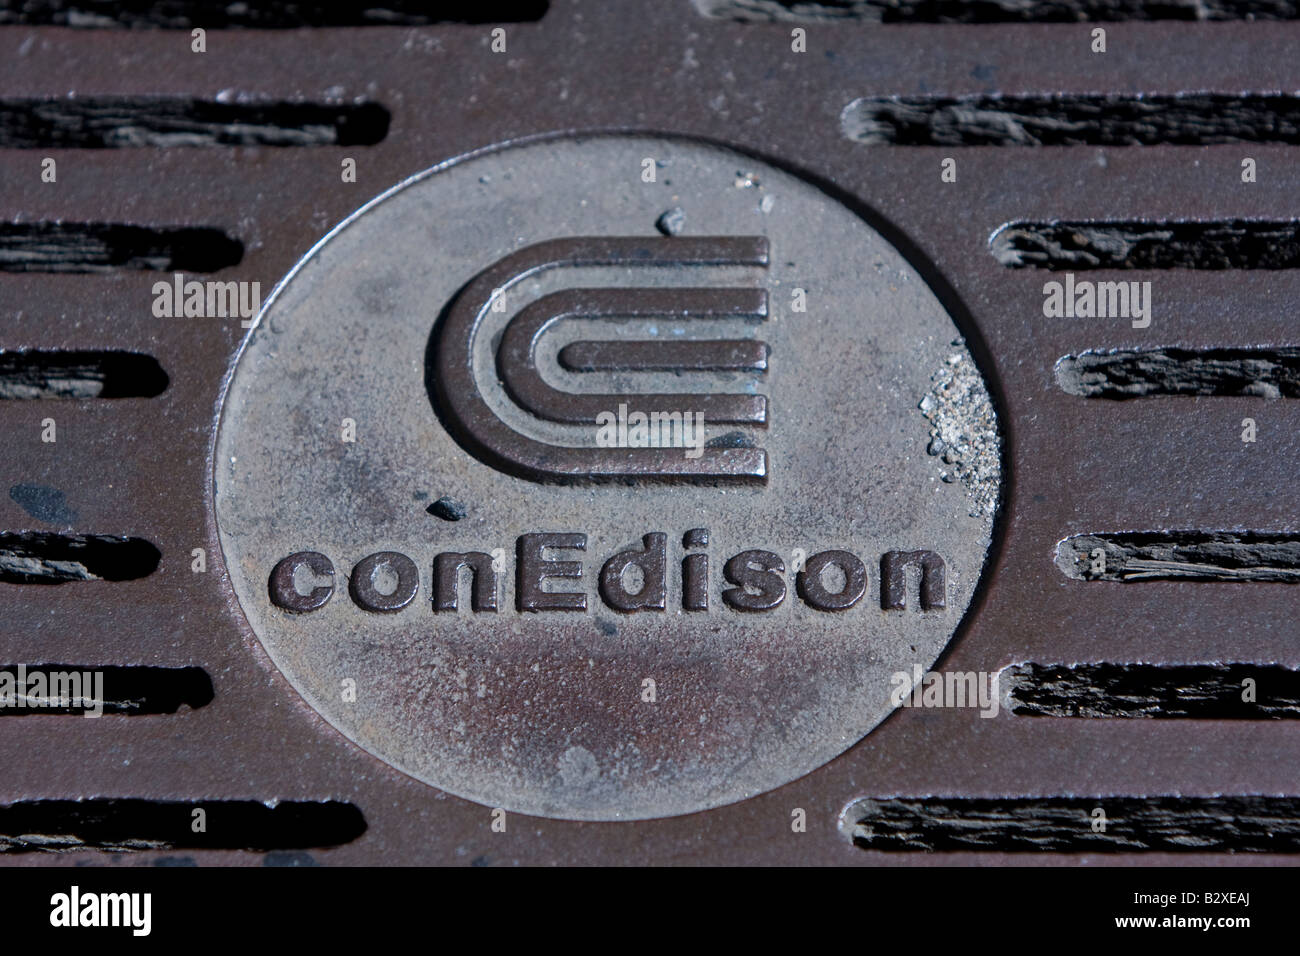 A Consolidated Edison manhole cover in Manhattan, NY - Stock Image